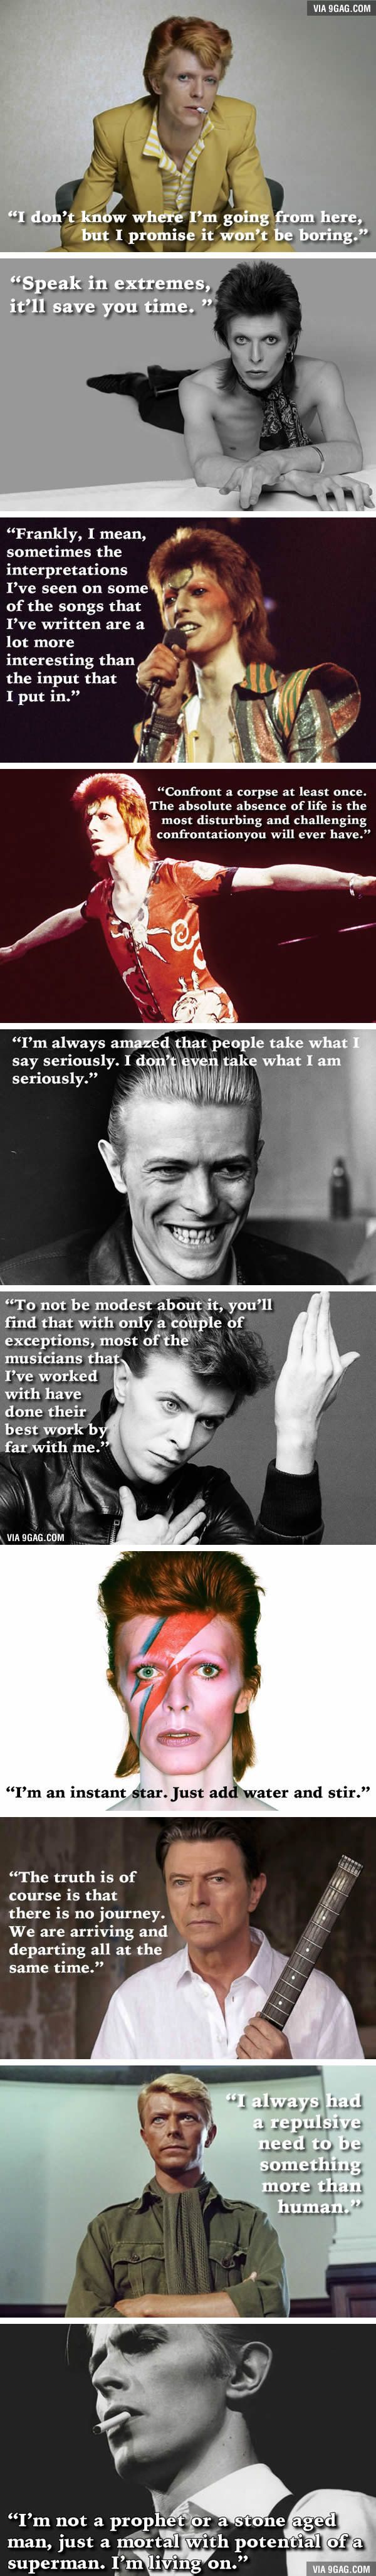 Top 10 David Bowie Quotes. RIP The Legend. - 9GAG